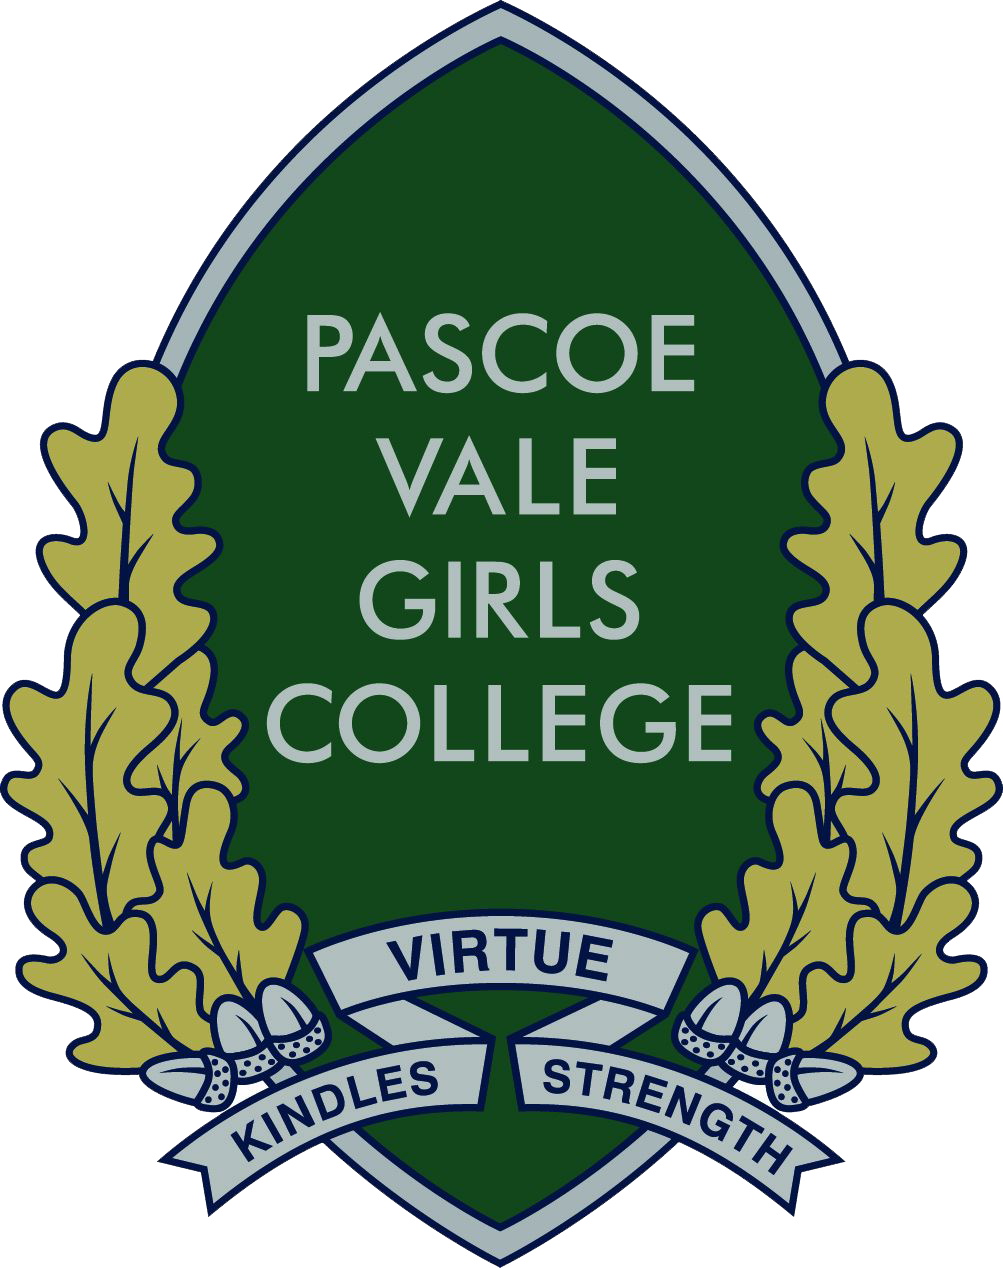 pascoe-vale-girls-college